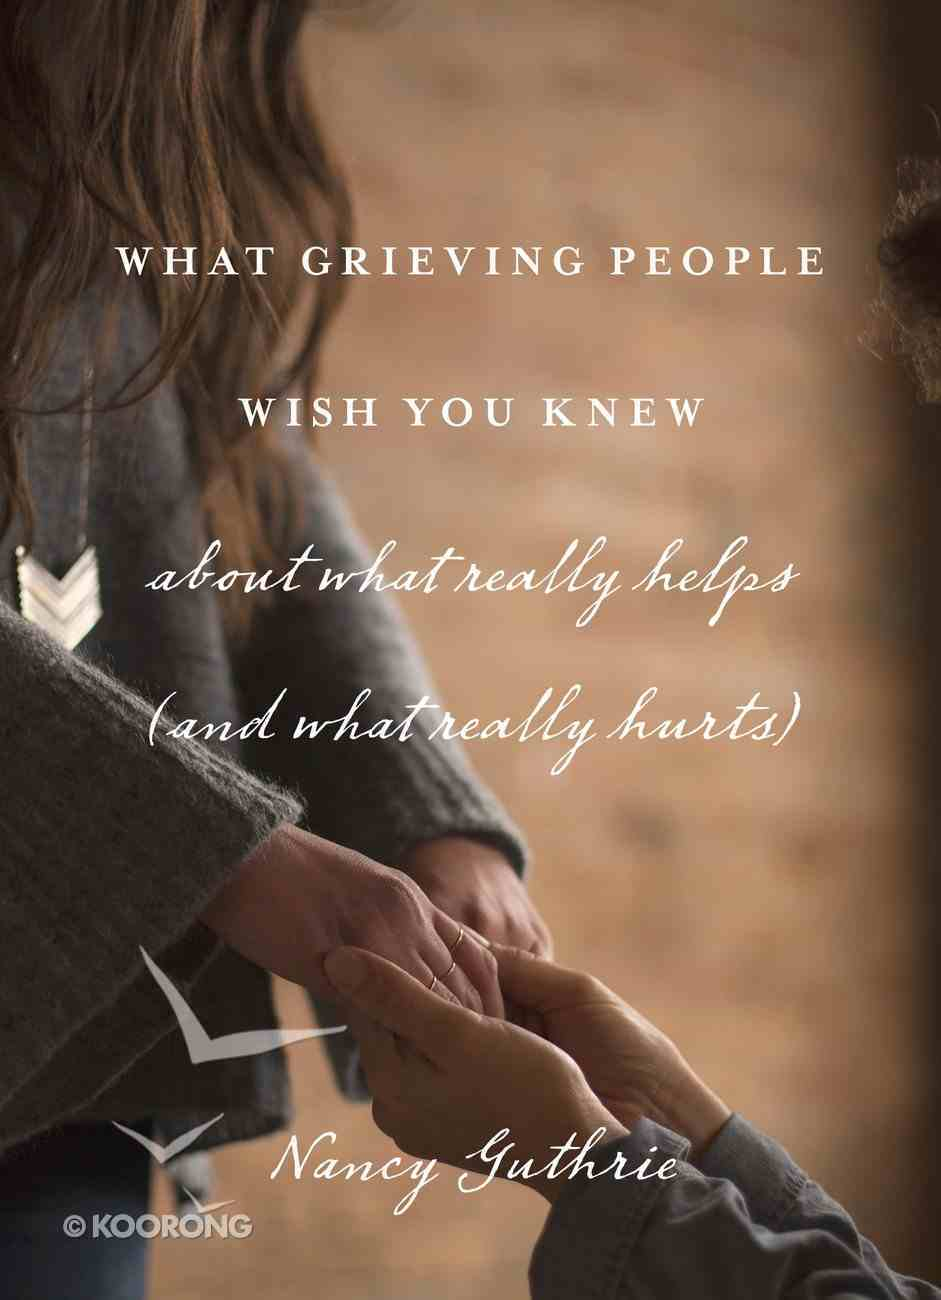 What Grieving People Wish You Knew About What Really Helps (And What Really Hurts) eBook